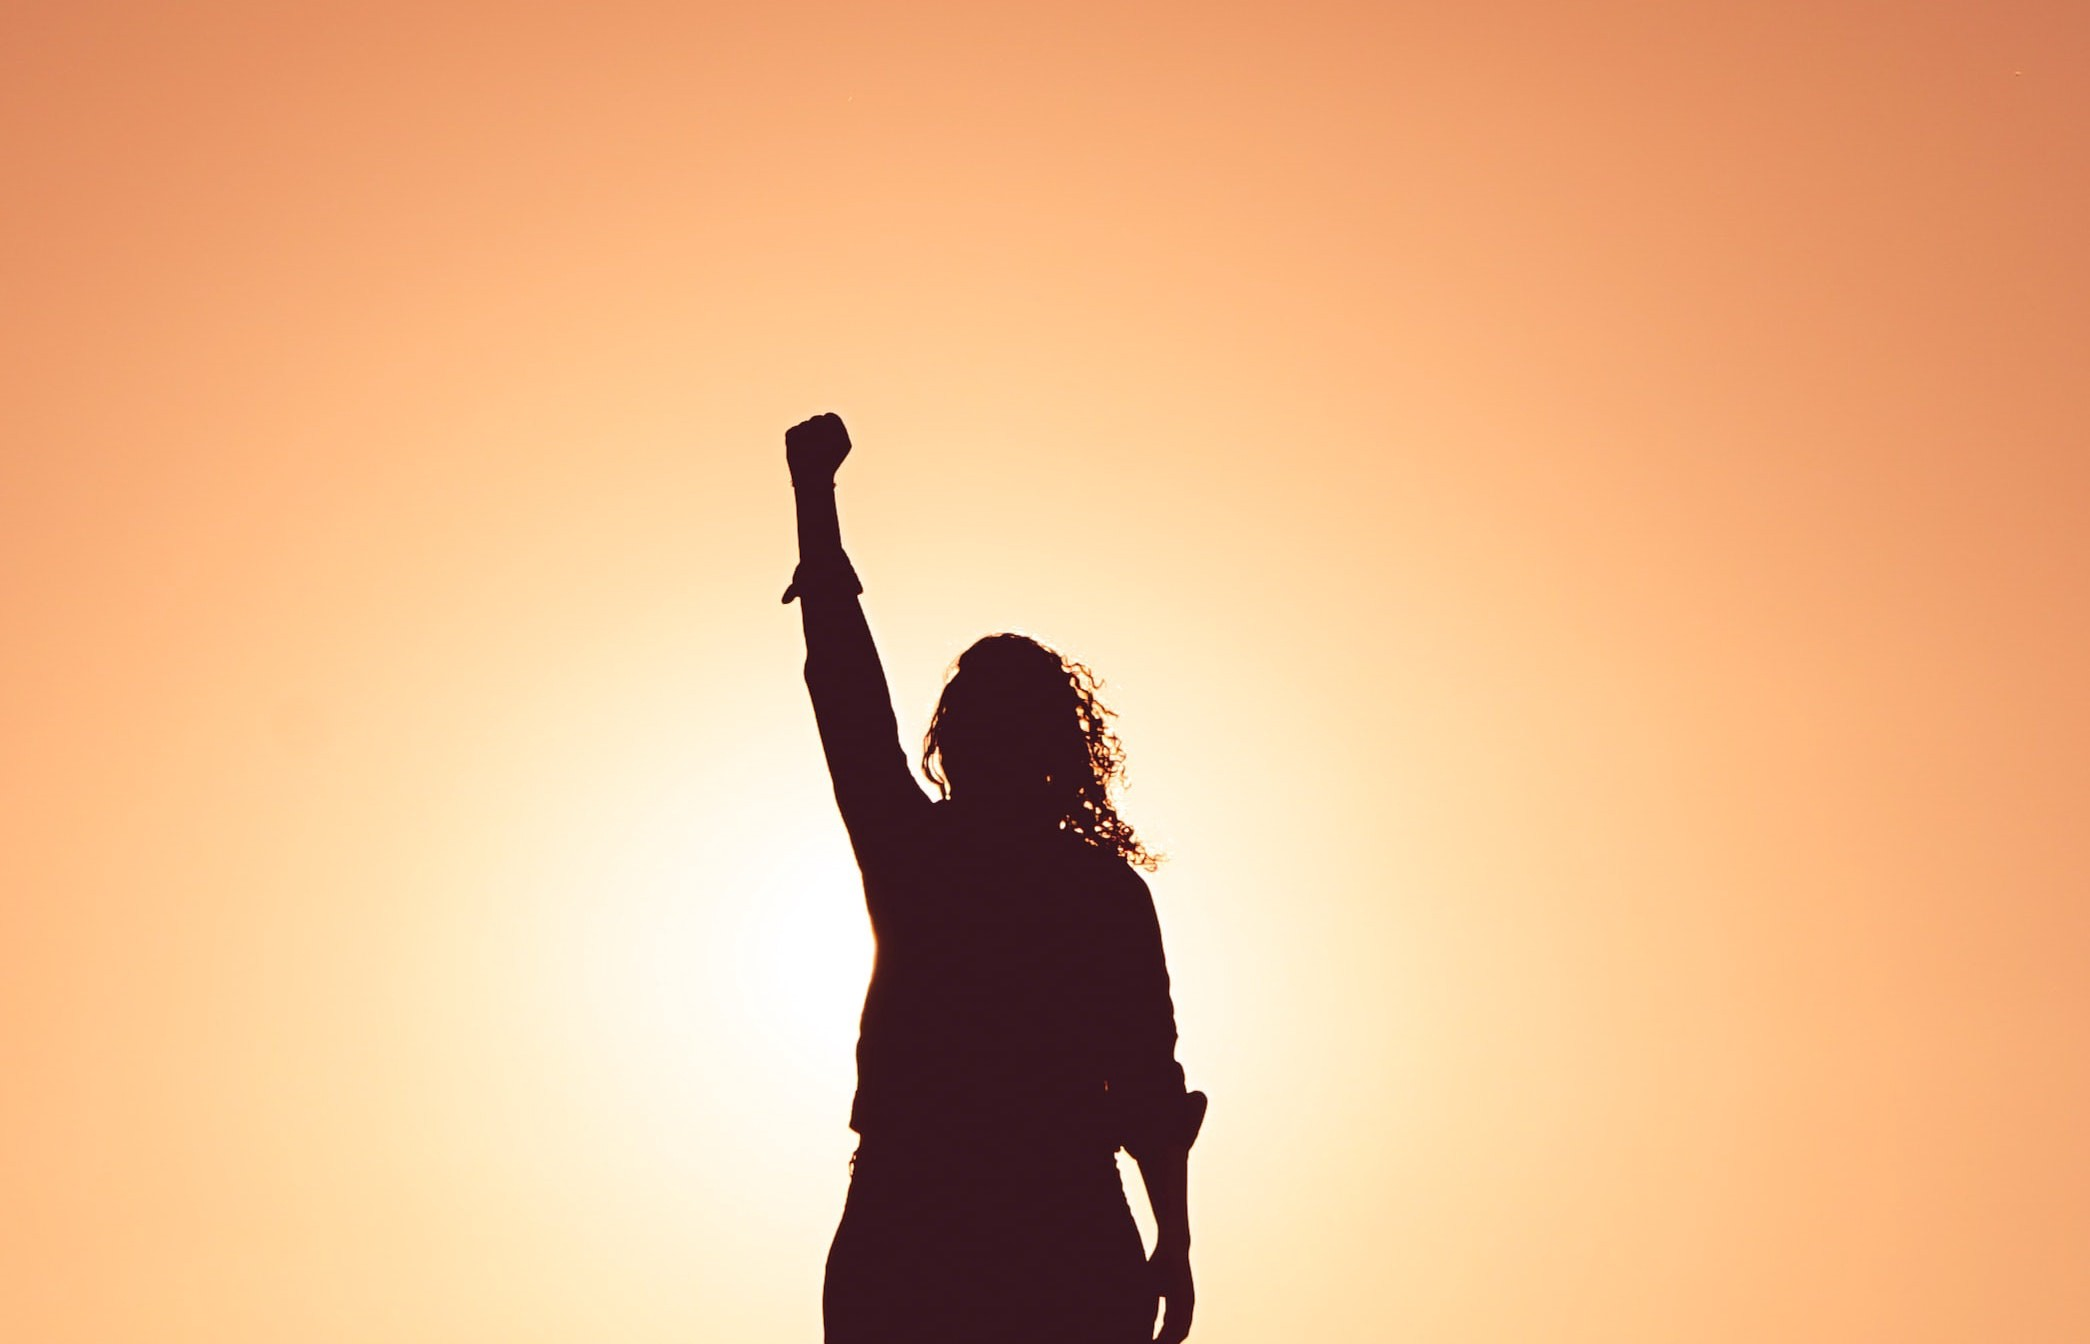 Silhouette of a person that may be a woman with raised right fist in front of yellow/orange light similar to sunrise/sunset/